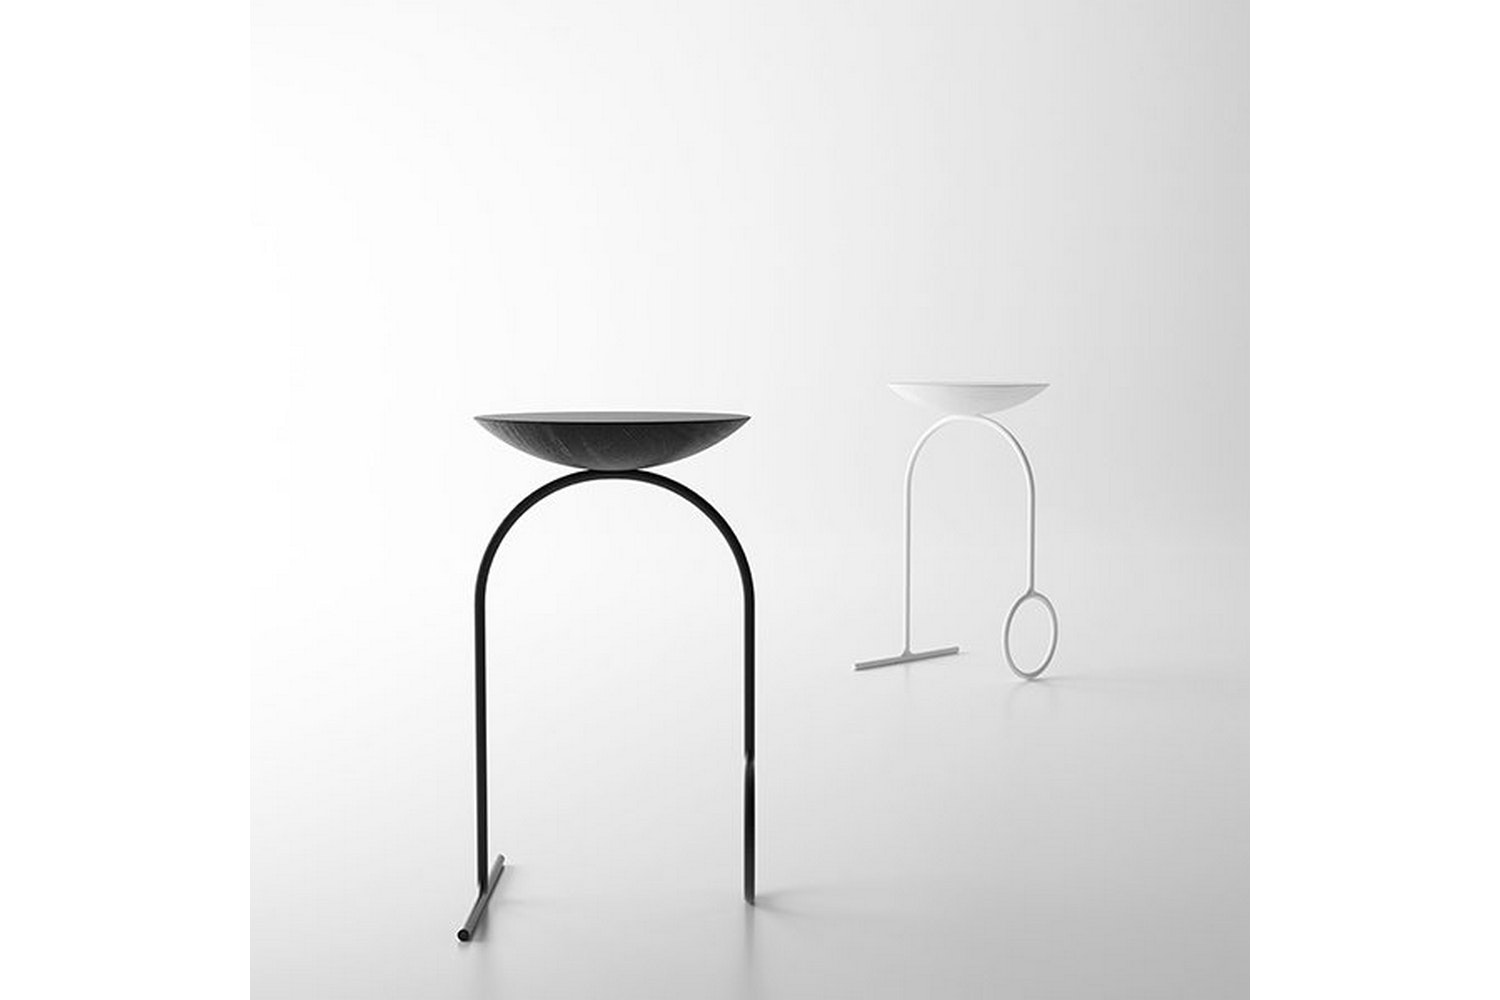 Giro Table by Pedro Paulo-Venzon for Viccarbe